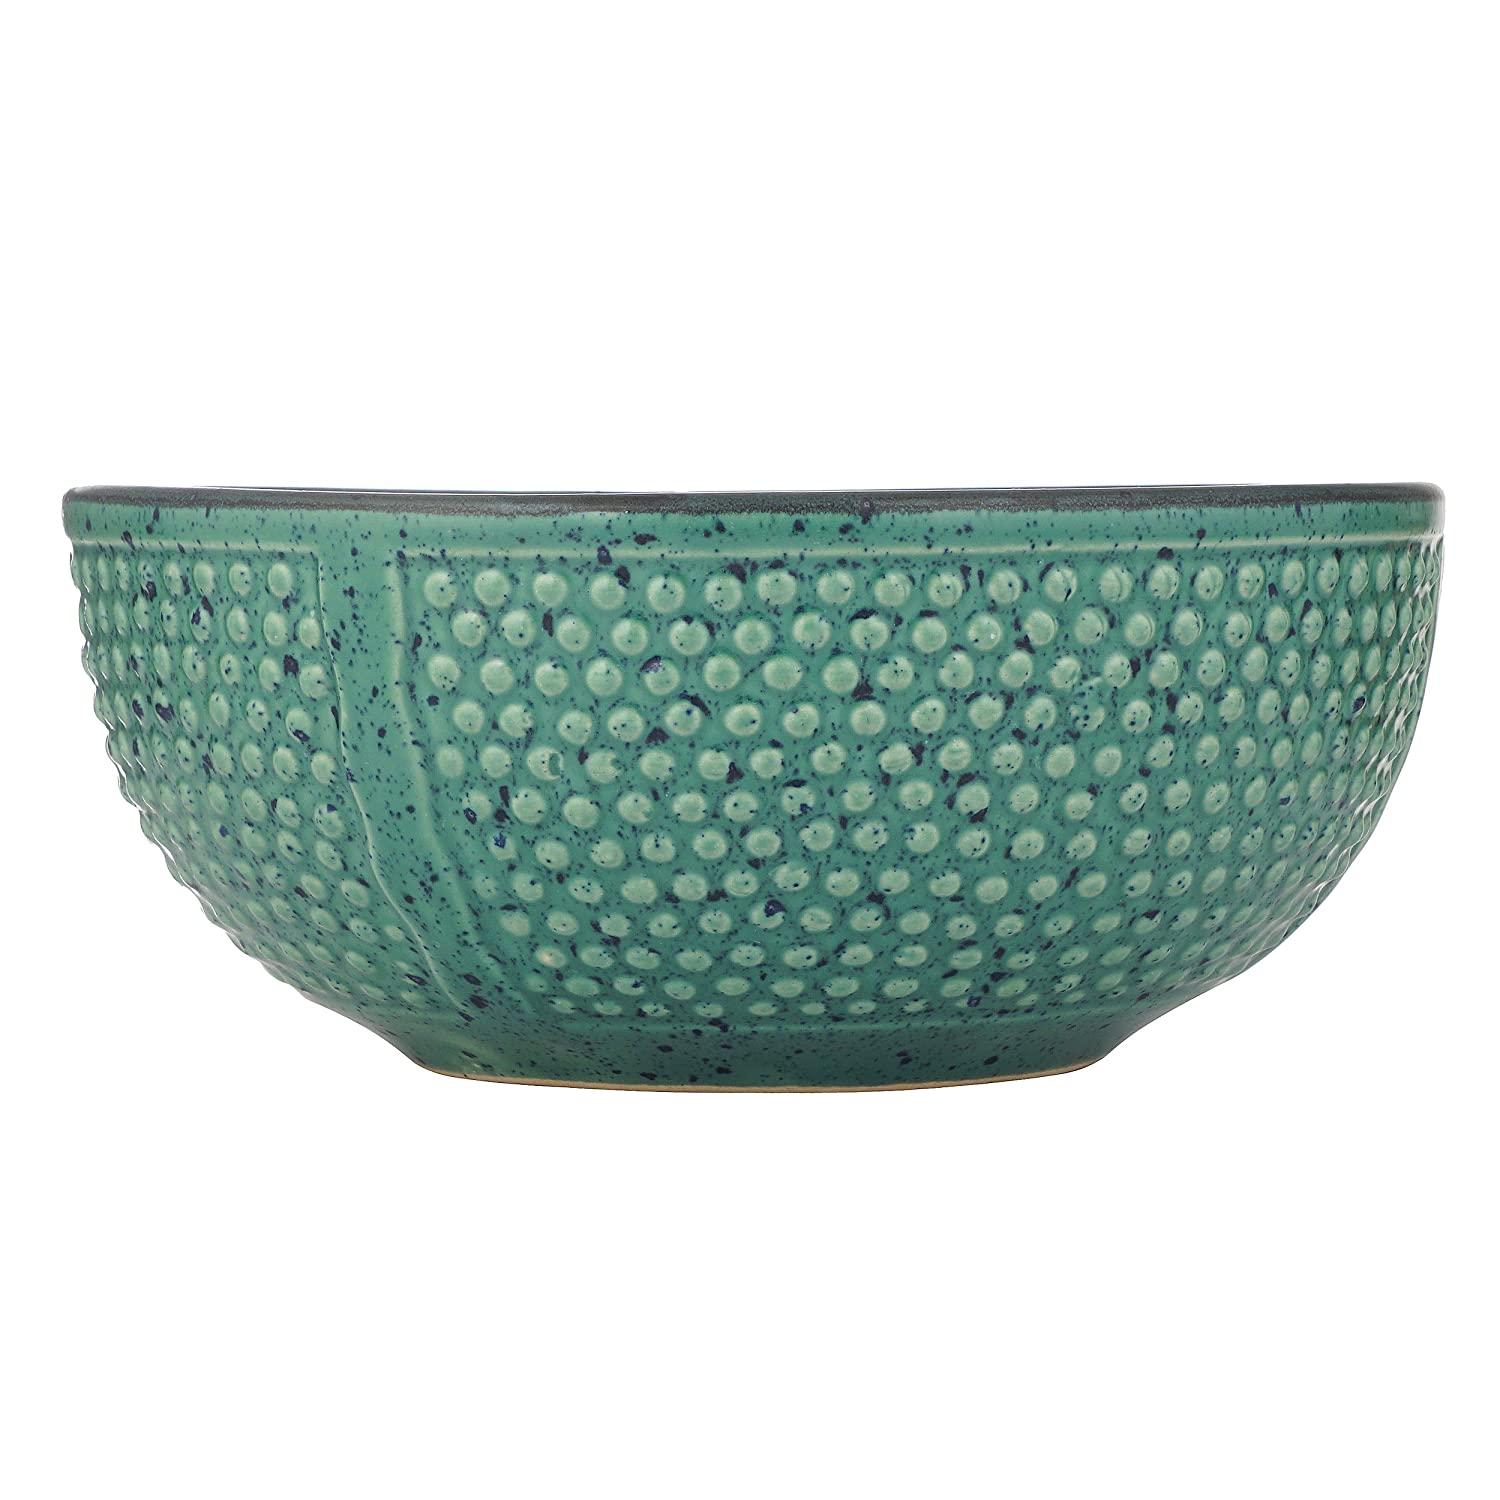 Ergonomic Crafted Serving Bowls - Studio Pottery by Artisanal Creations (Large)